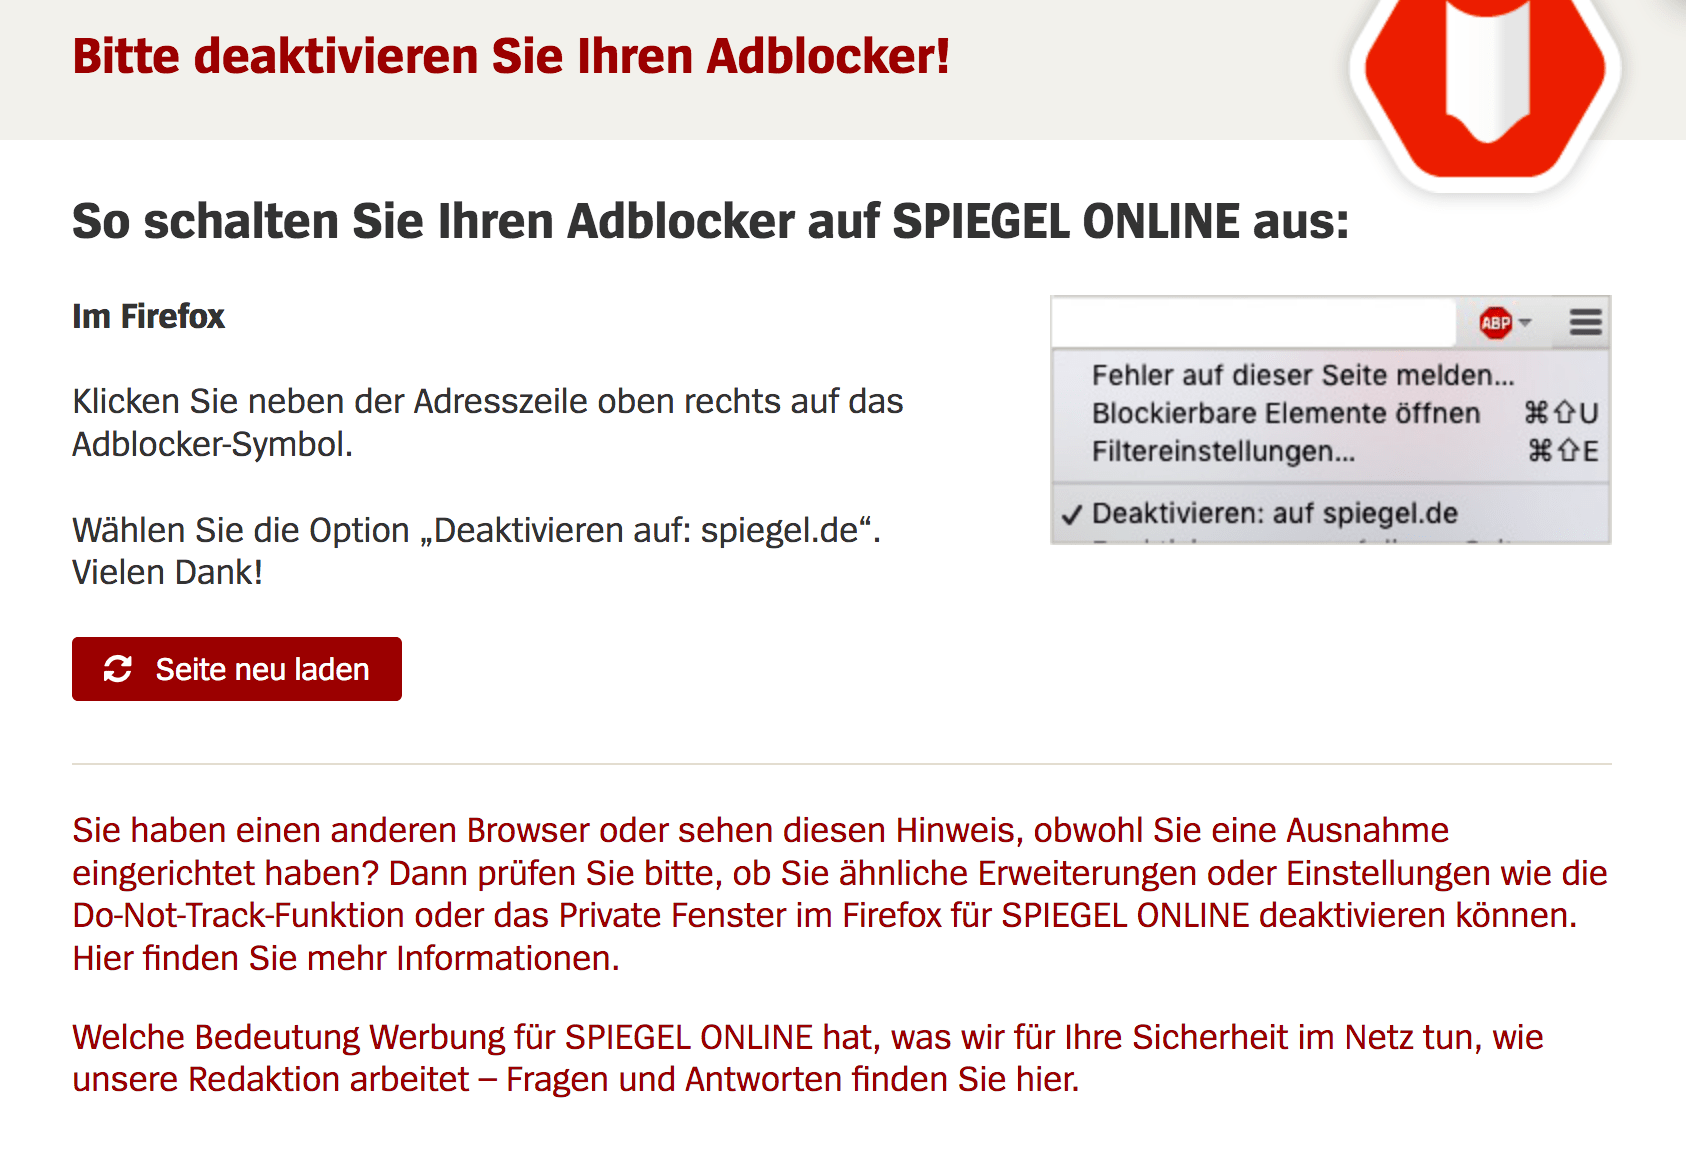 Spiehgel Online Spiegel De Is Withholding Contents Even When Whitelisted Pb